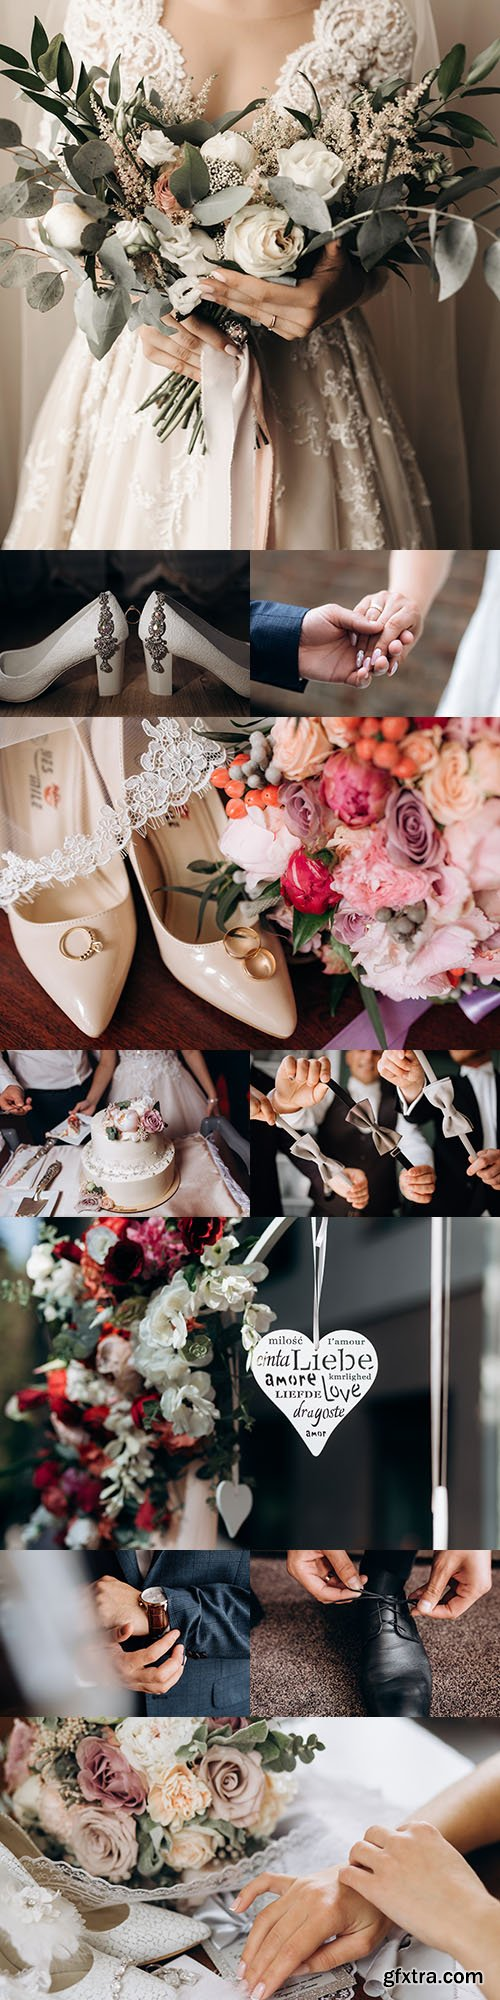 Bride's wedding bouquet, shoes and clothing attributes